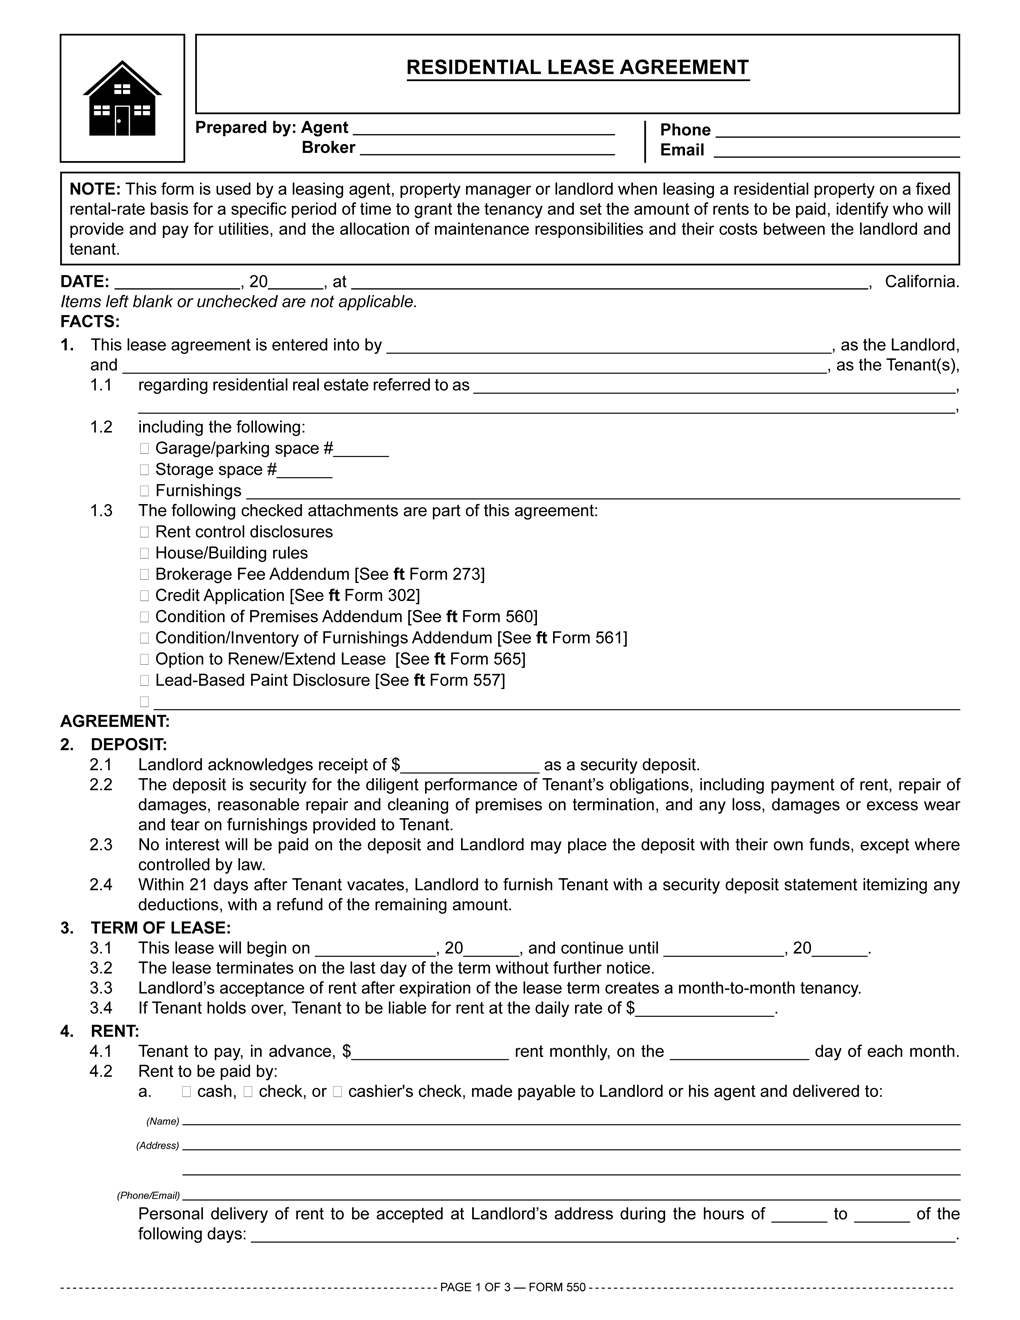 Residential Lease Agreement Rpi Form 550 First Tuesday